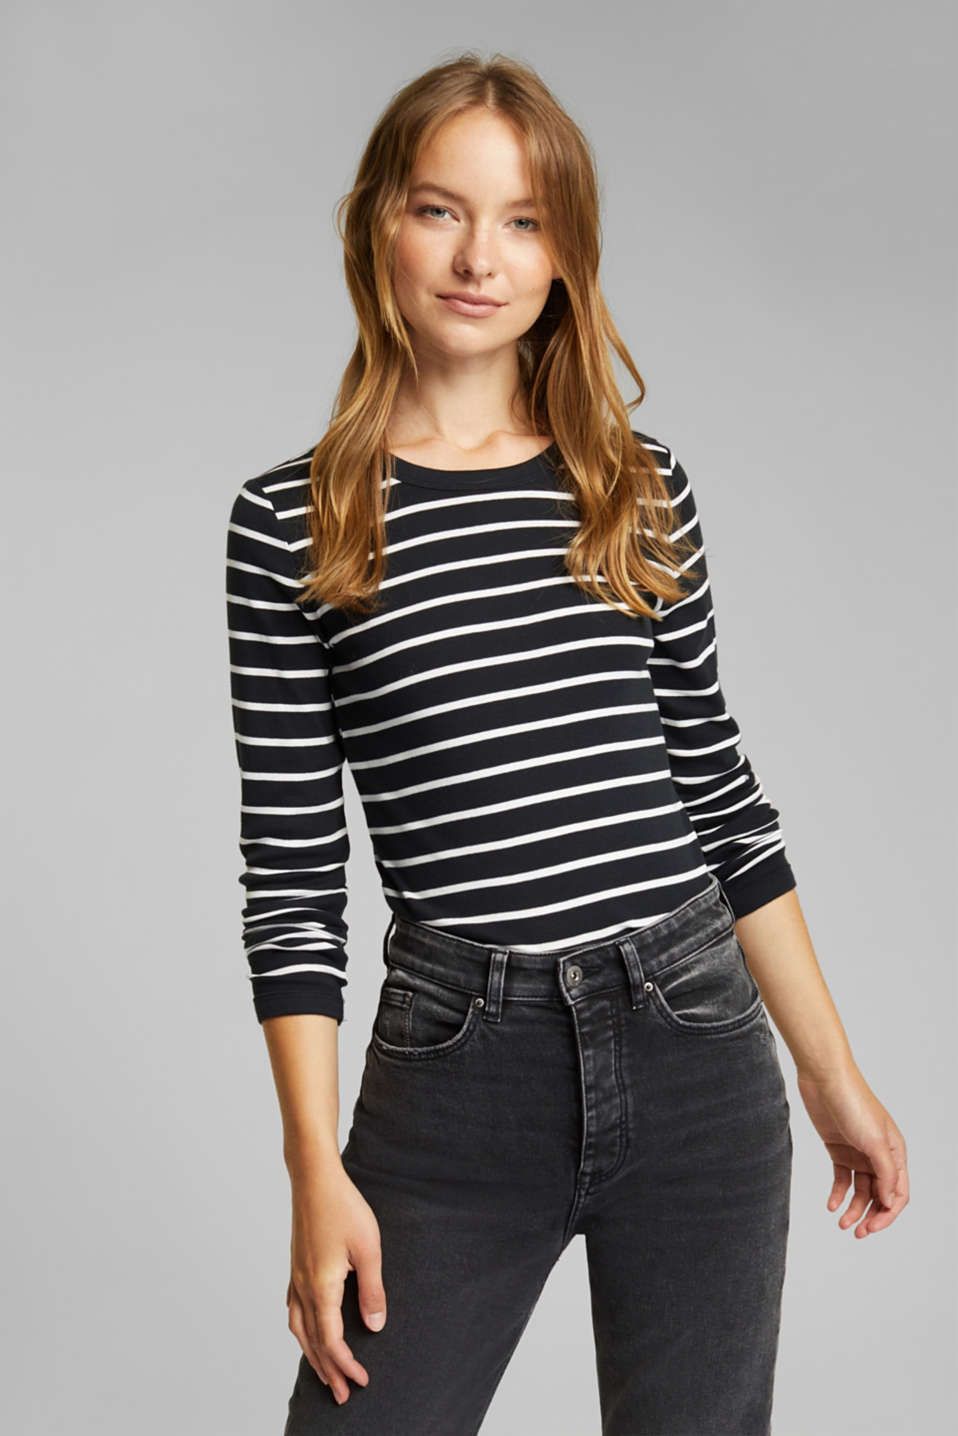 Esprit - Long sleeve top made of 100% organic cotton